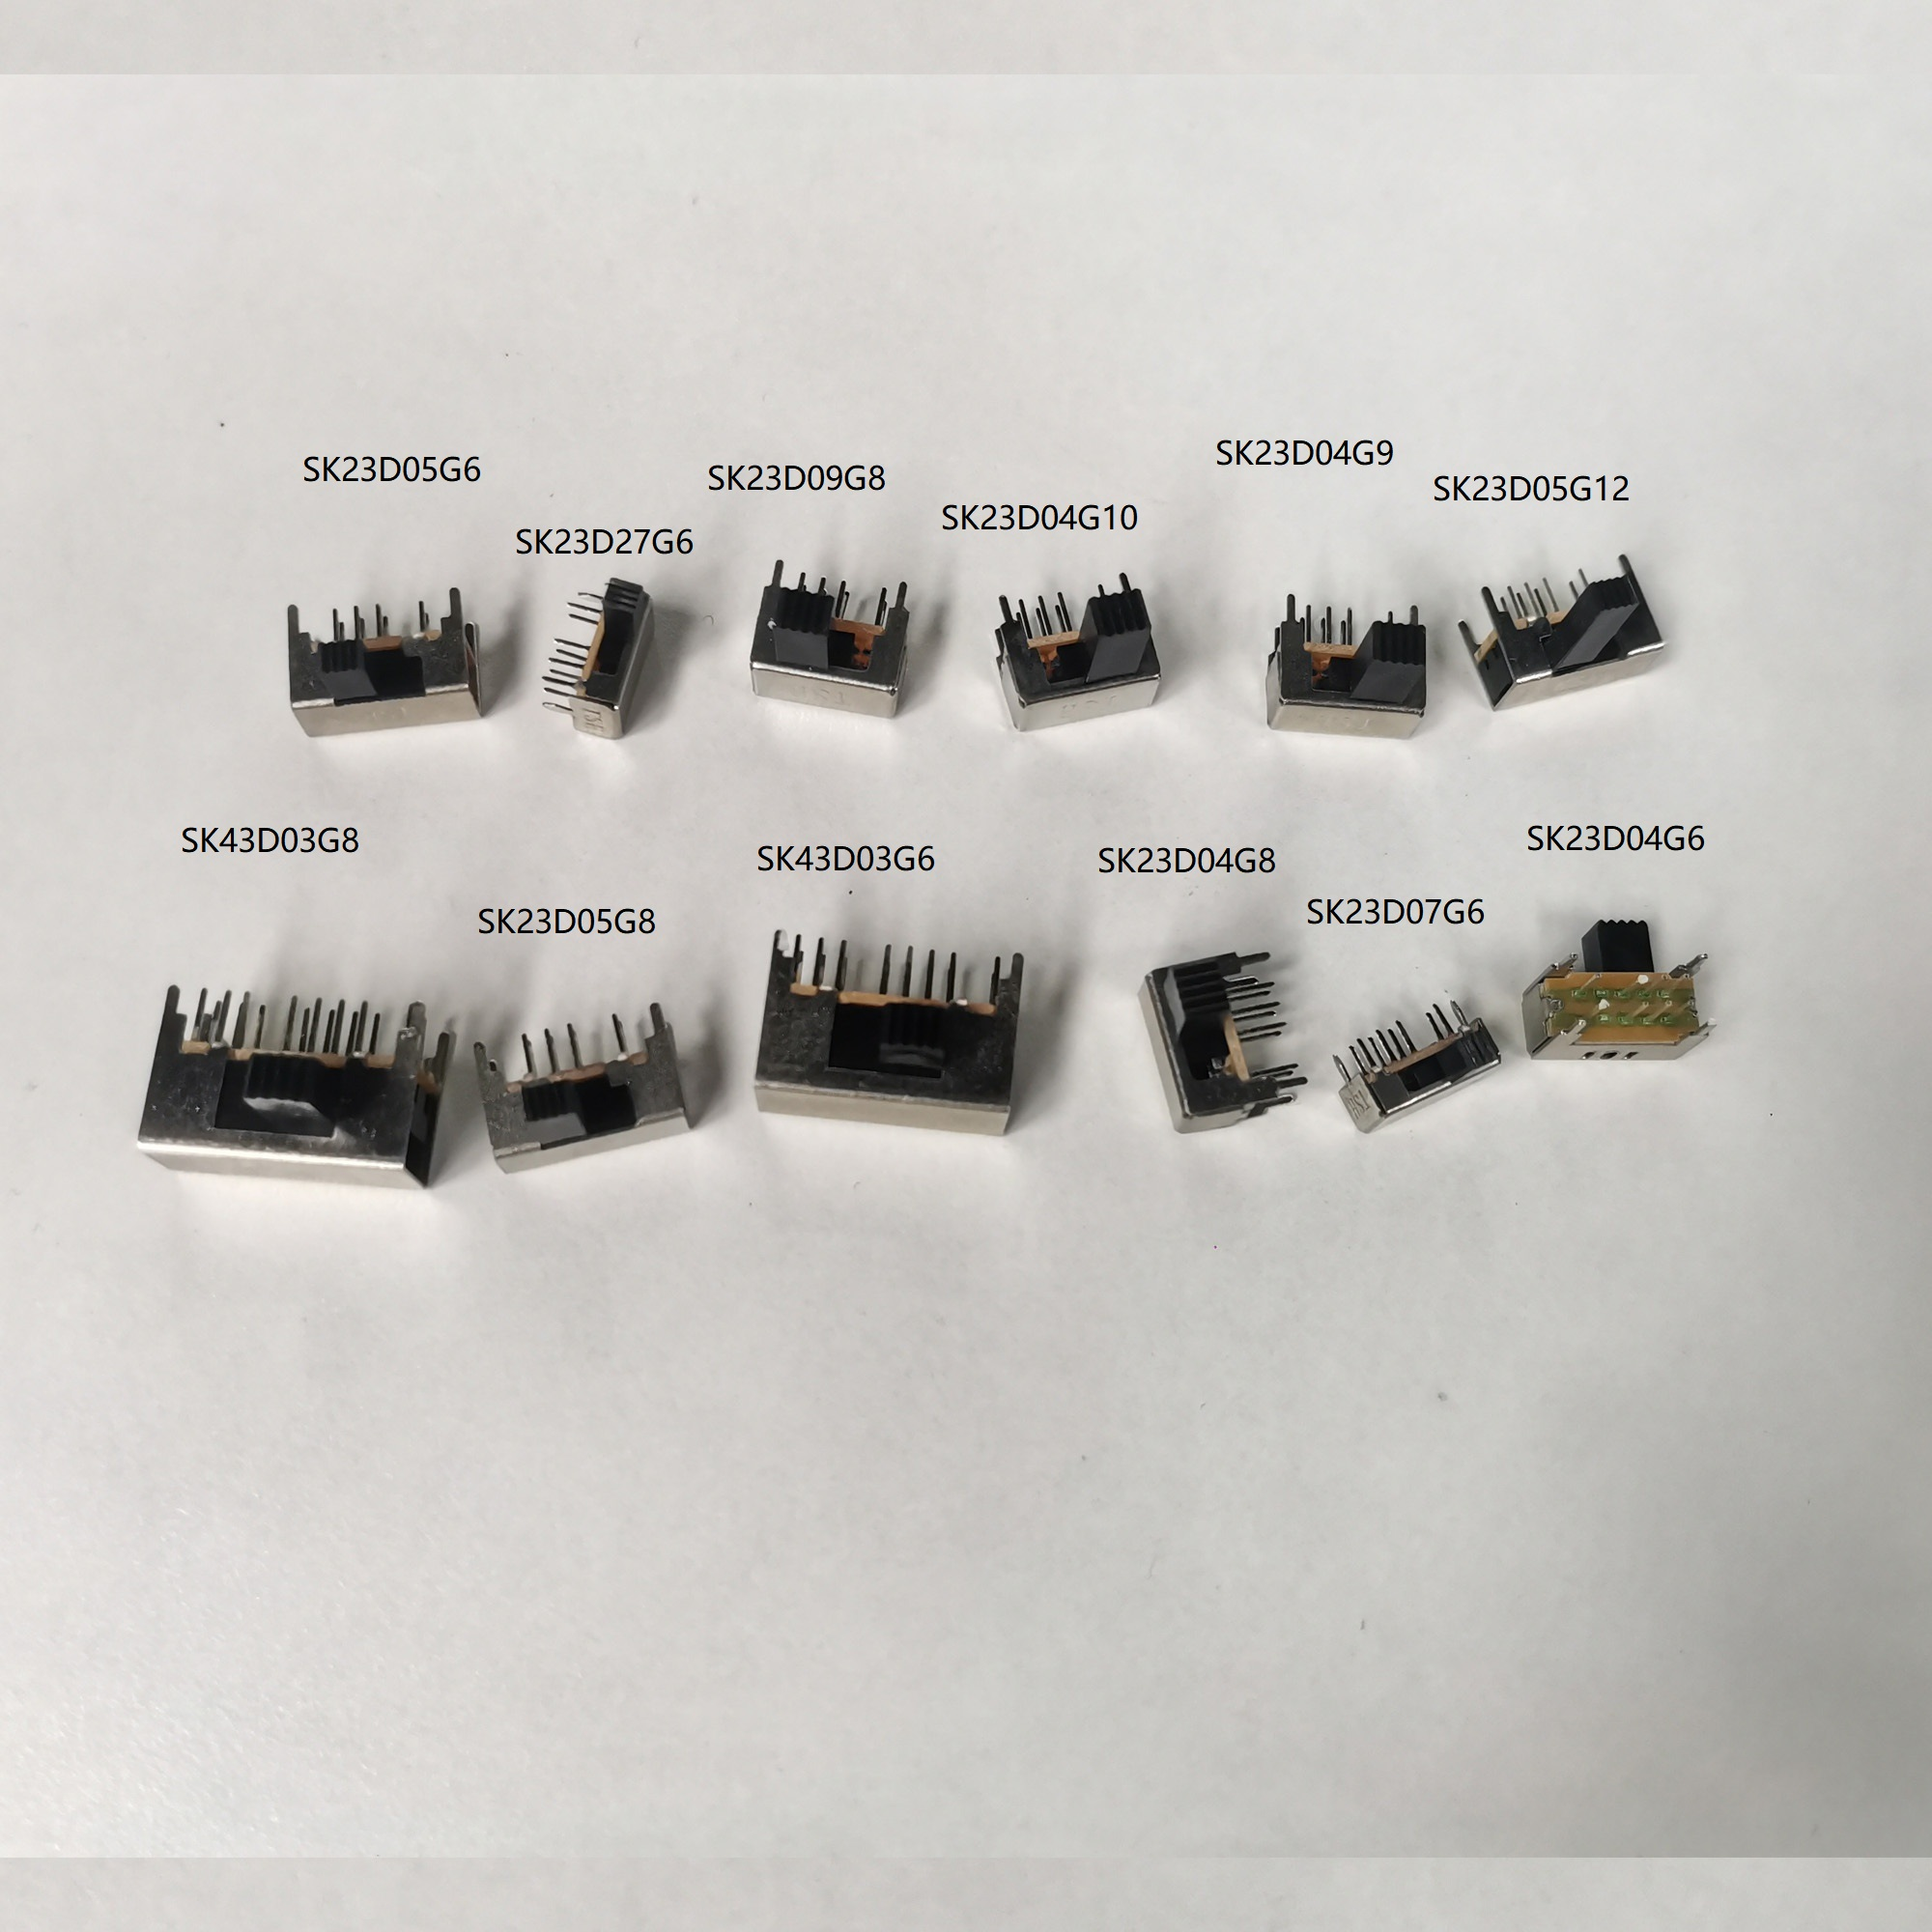 10PCS/Lot 8 Pin toggle switch Slide Switch Horizontal switch lever switch SK37D05G12 left one right three Ex-factor price